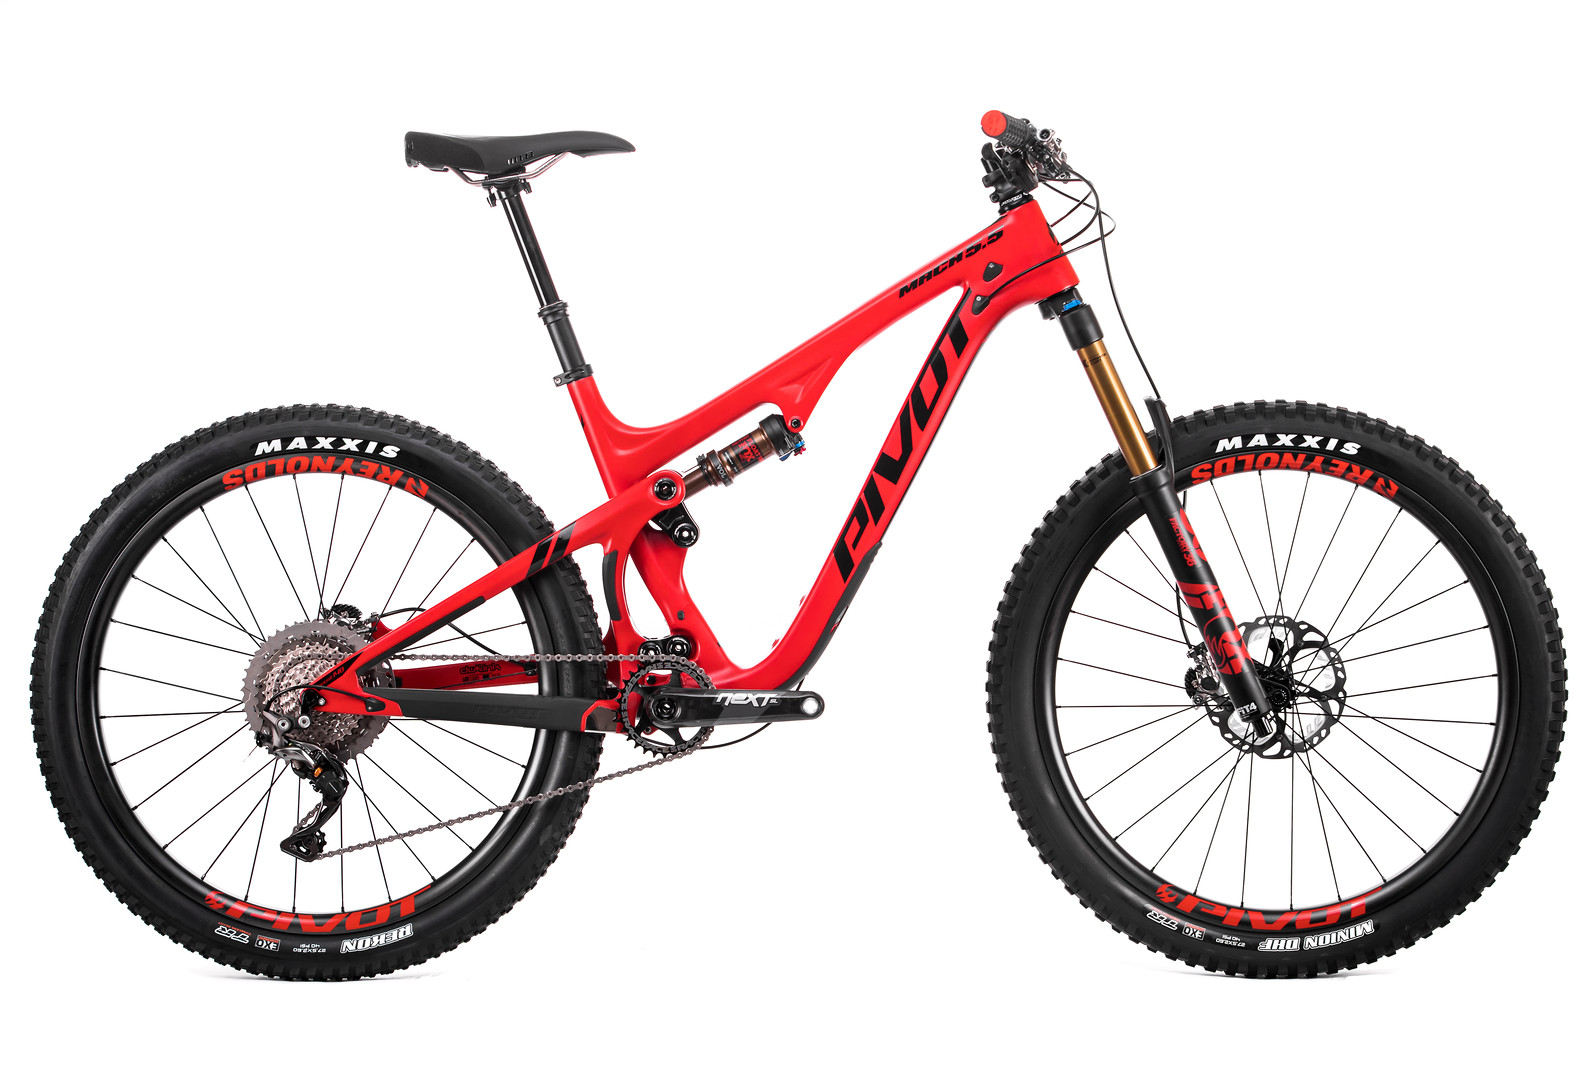 Reviews Com Product Reviews And Comparisons Of 2018 >> 2018 Pivot Mach 5.5 Carbon Team XTR 1x - Reviews, Comparisons, Specs - Mountain Bikes - Vital MTB